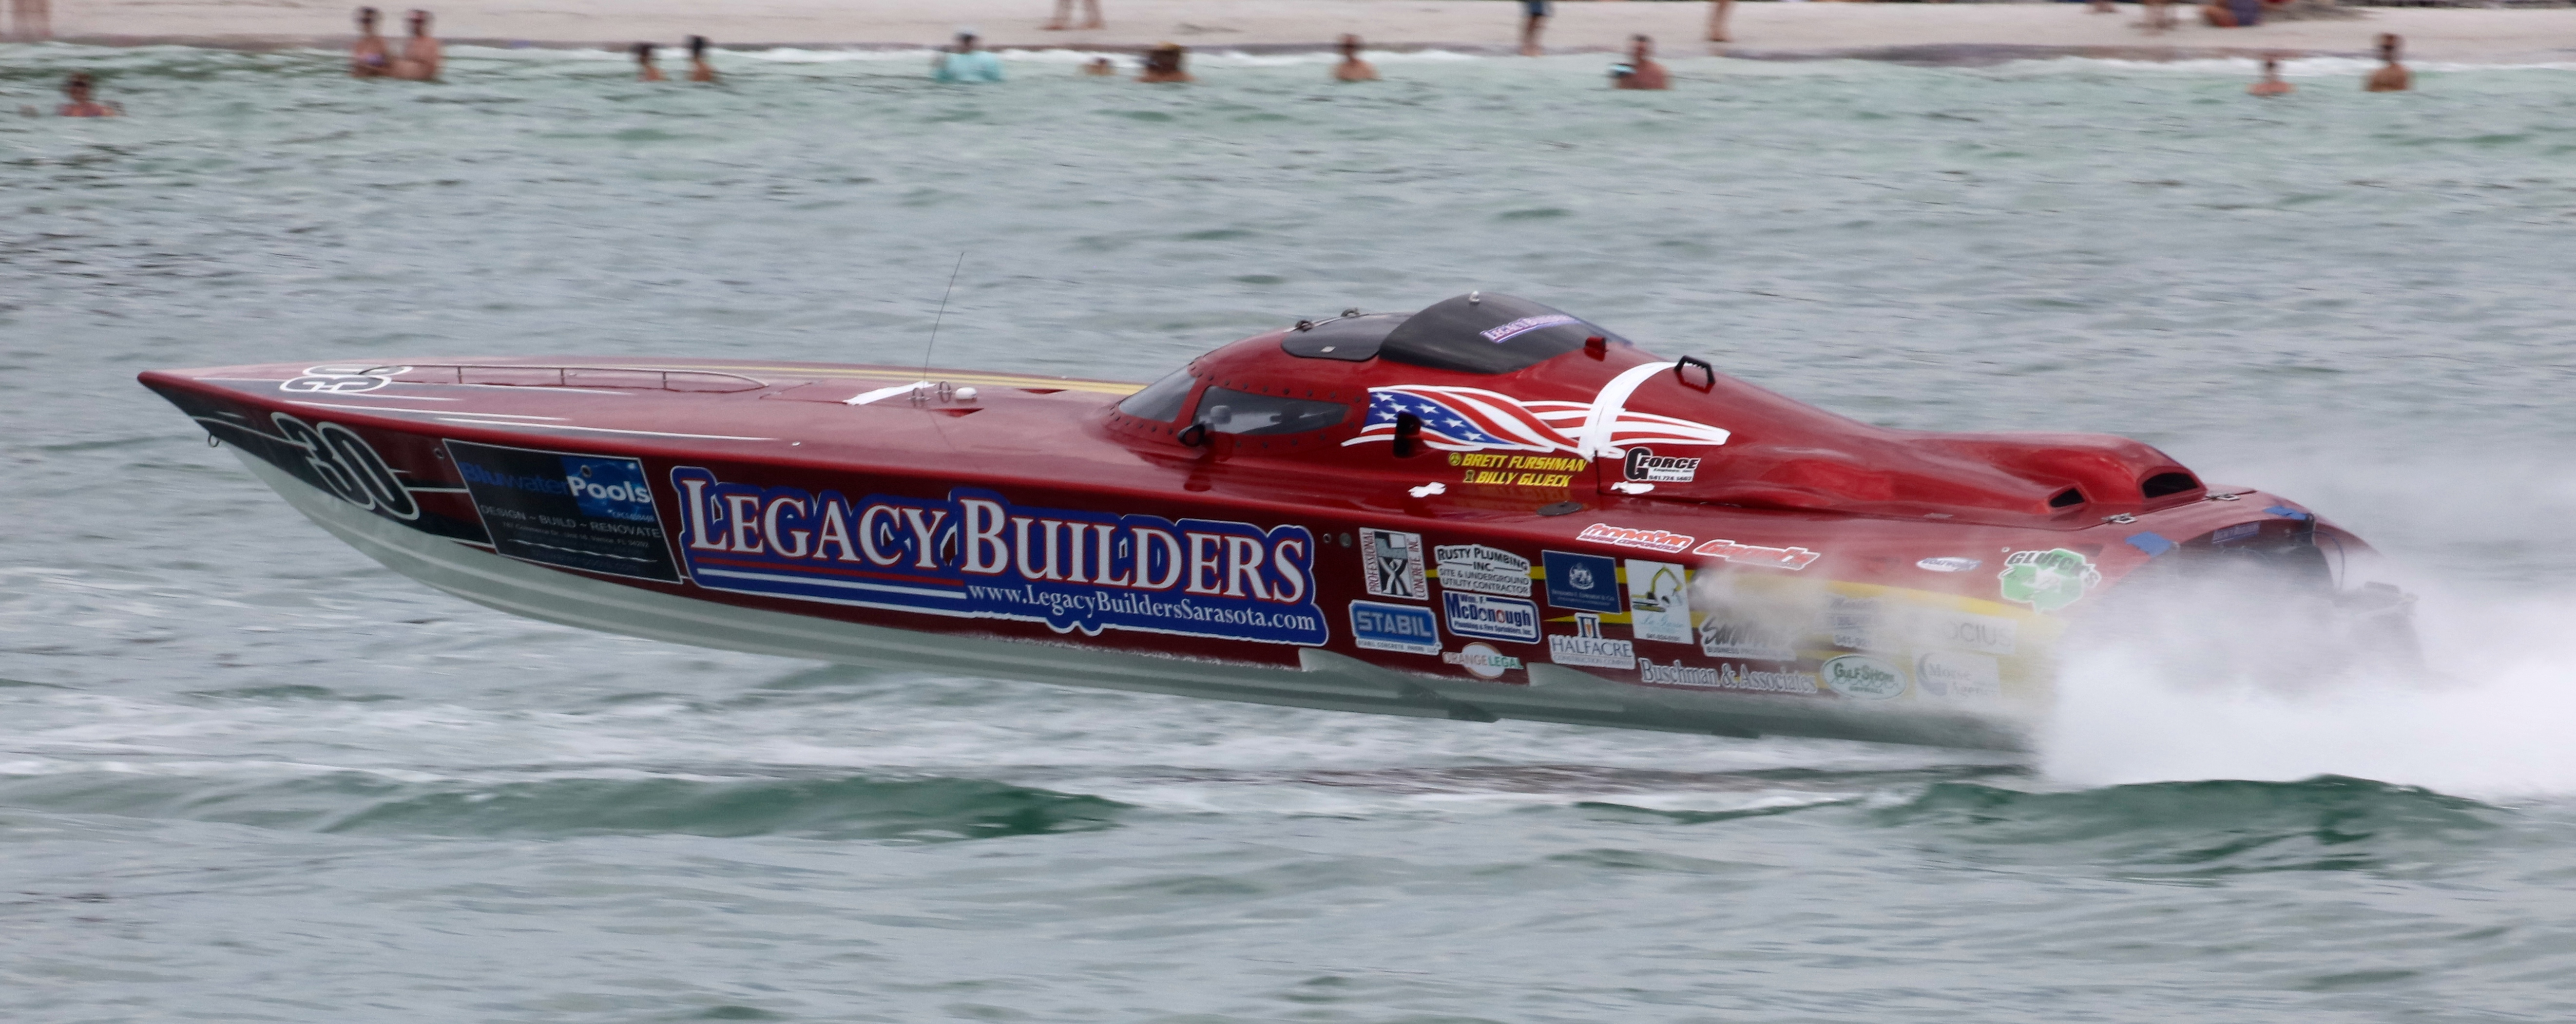 Hometown favorite Billy Glueck took a checkered flag in the Legacy Builders/Twisted Metal boat. All photos by Pete Boden/Shoot 2 Thrill Pix. (https://www.facebook.com/Shoot-2-Thrill-Pix-130528070292399/)